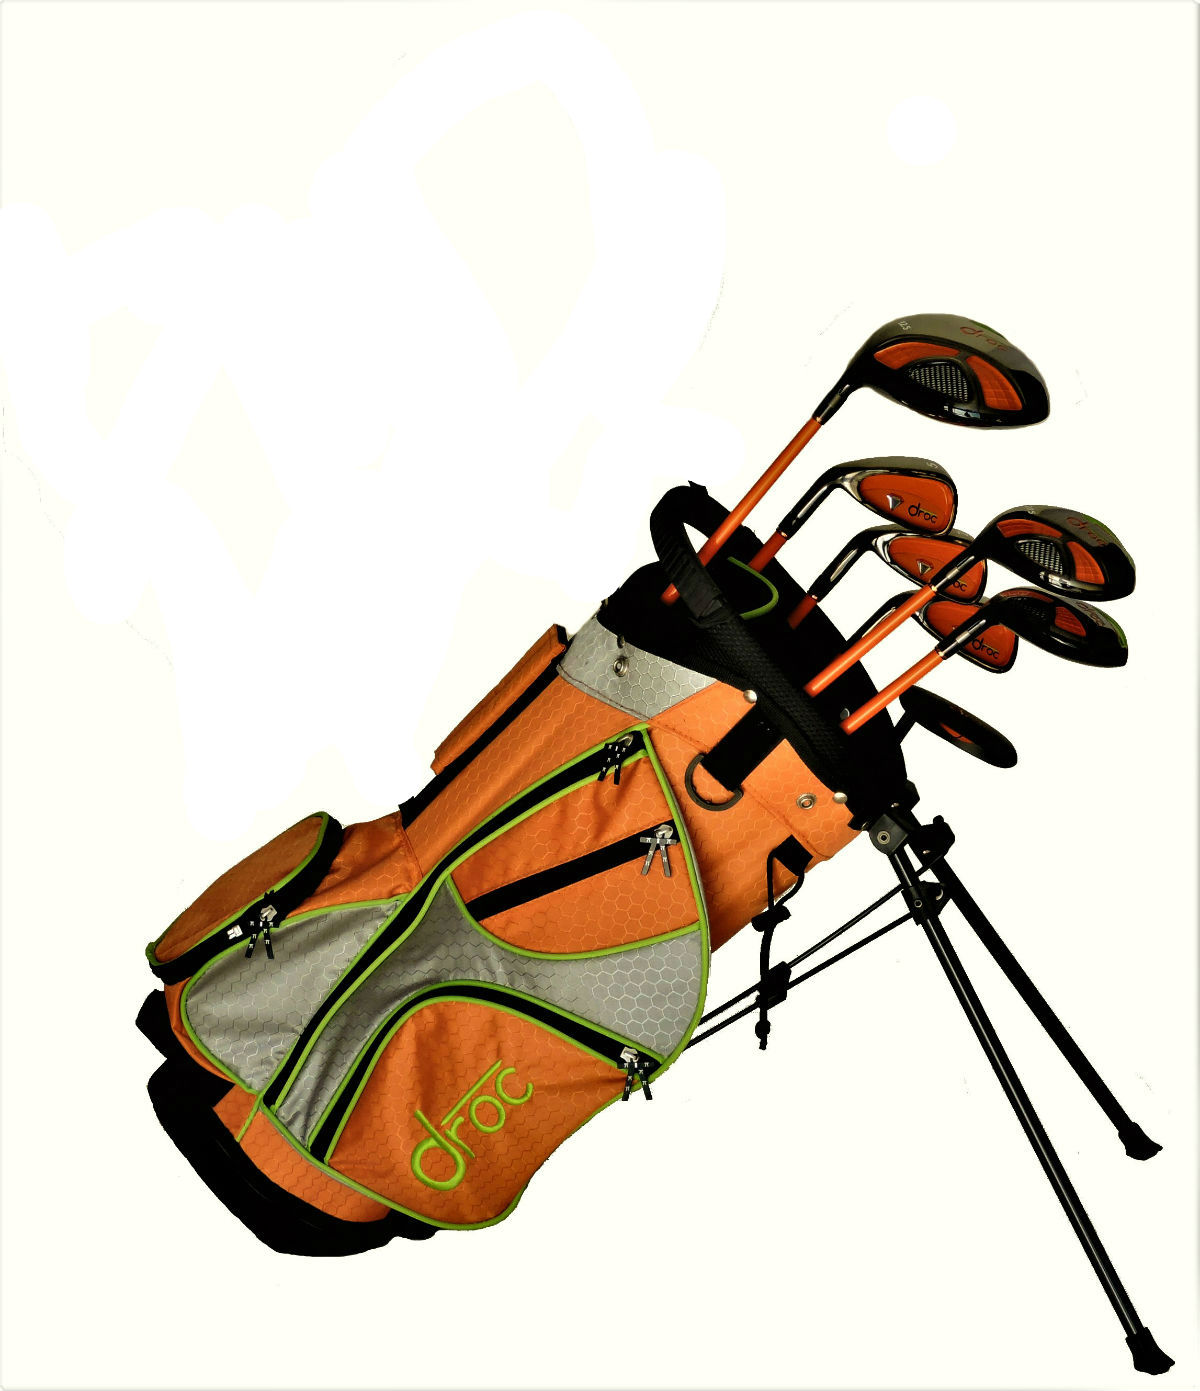 DROC - Mica Series * 7 * Pcs Golf Club Set & Golf Bag Age 3-6 Left Handed